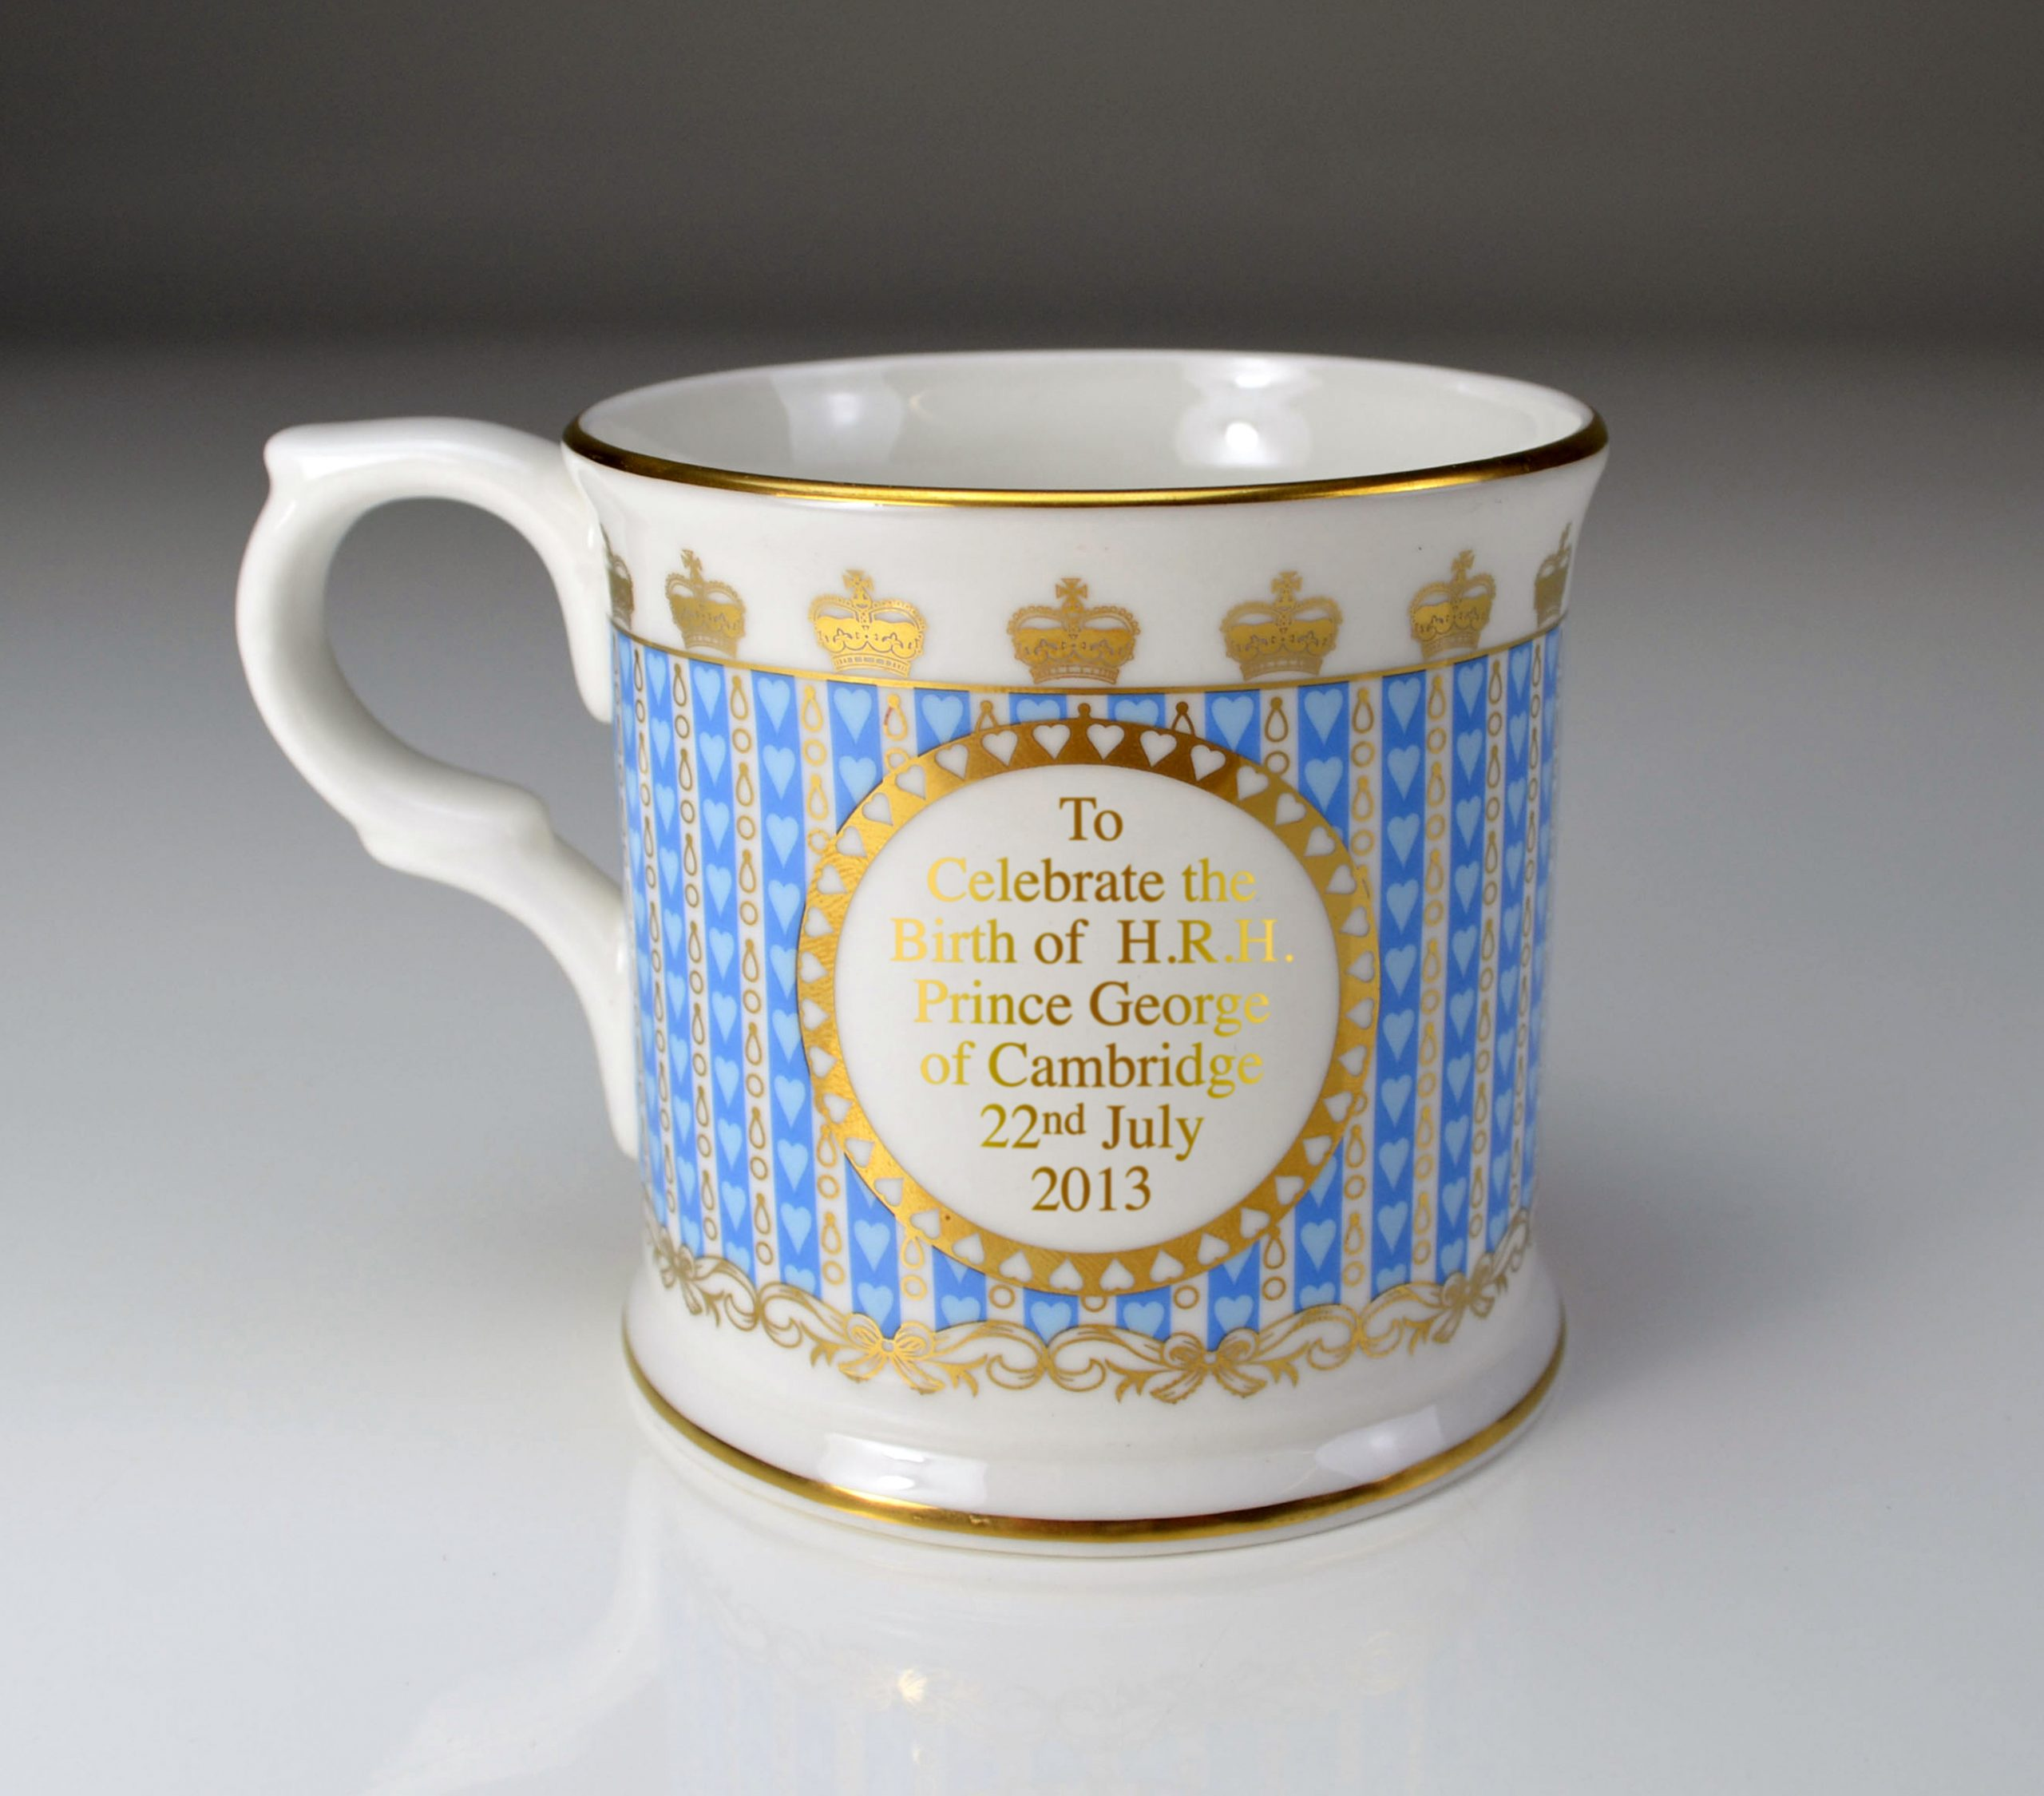 William Edwards HRH Prince George of Cambridge Mug - Back